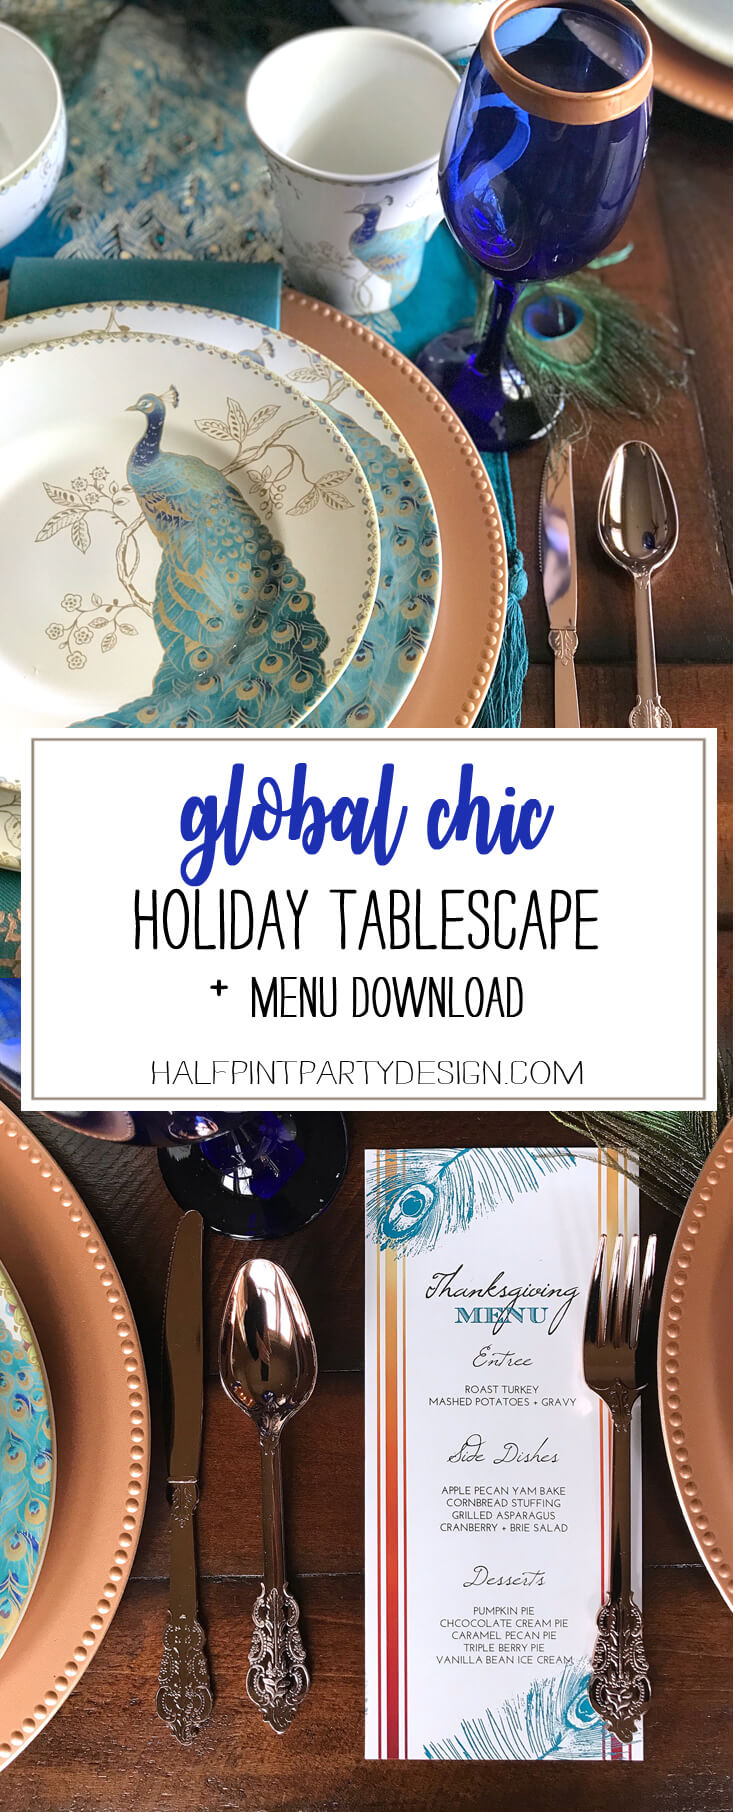 Peacock China, copper chargers, custom place cards with Far East flair makes for exotic Thanksgiving, Christmas, or dinner party table decor. Download your FREE editable Thanksgiving menu too! See more Global Chic Holiday Tablescape ideas at Halfpint Design. Thanksgiving Tablescape, Place setting, Christmas Table, Holiday decor.